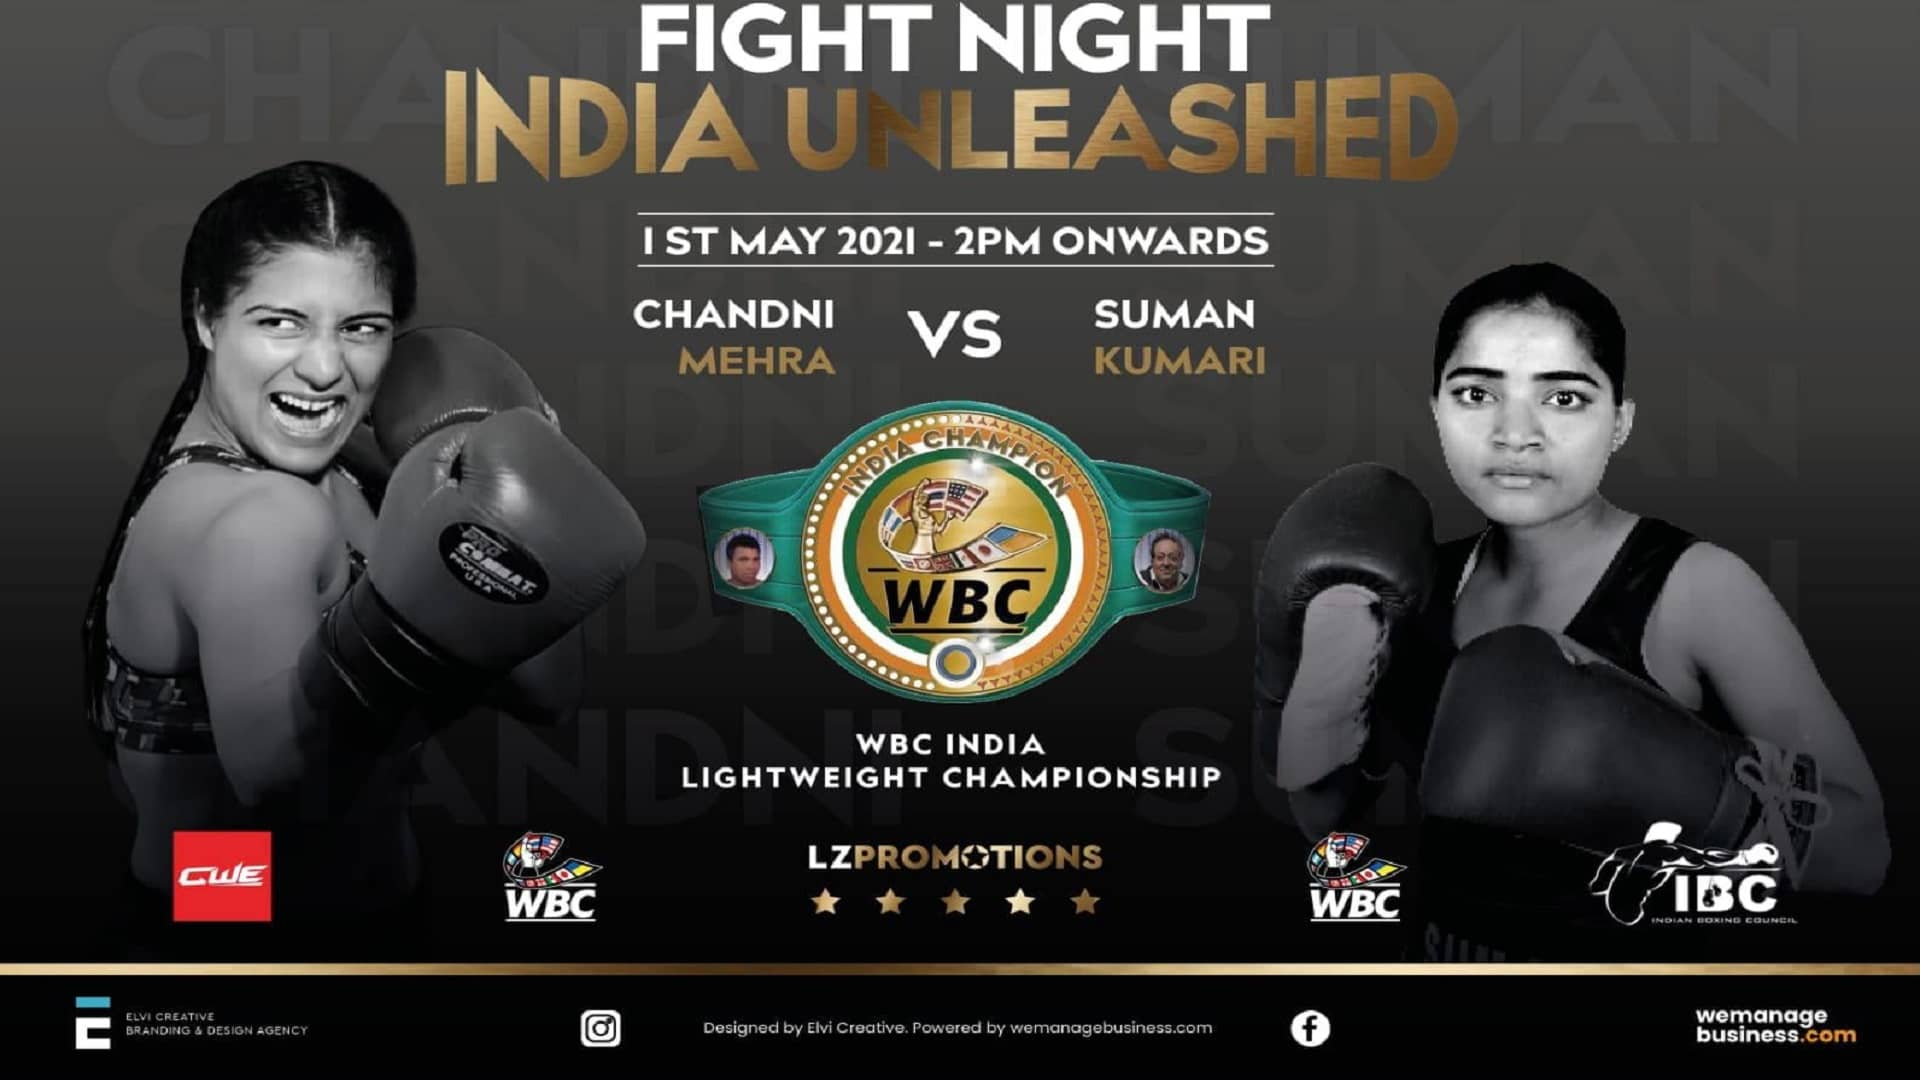 https://lockerroom.in/blog/view/Chandni-Mehra-Suman-Kumar-WBC-India-Title